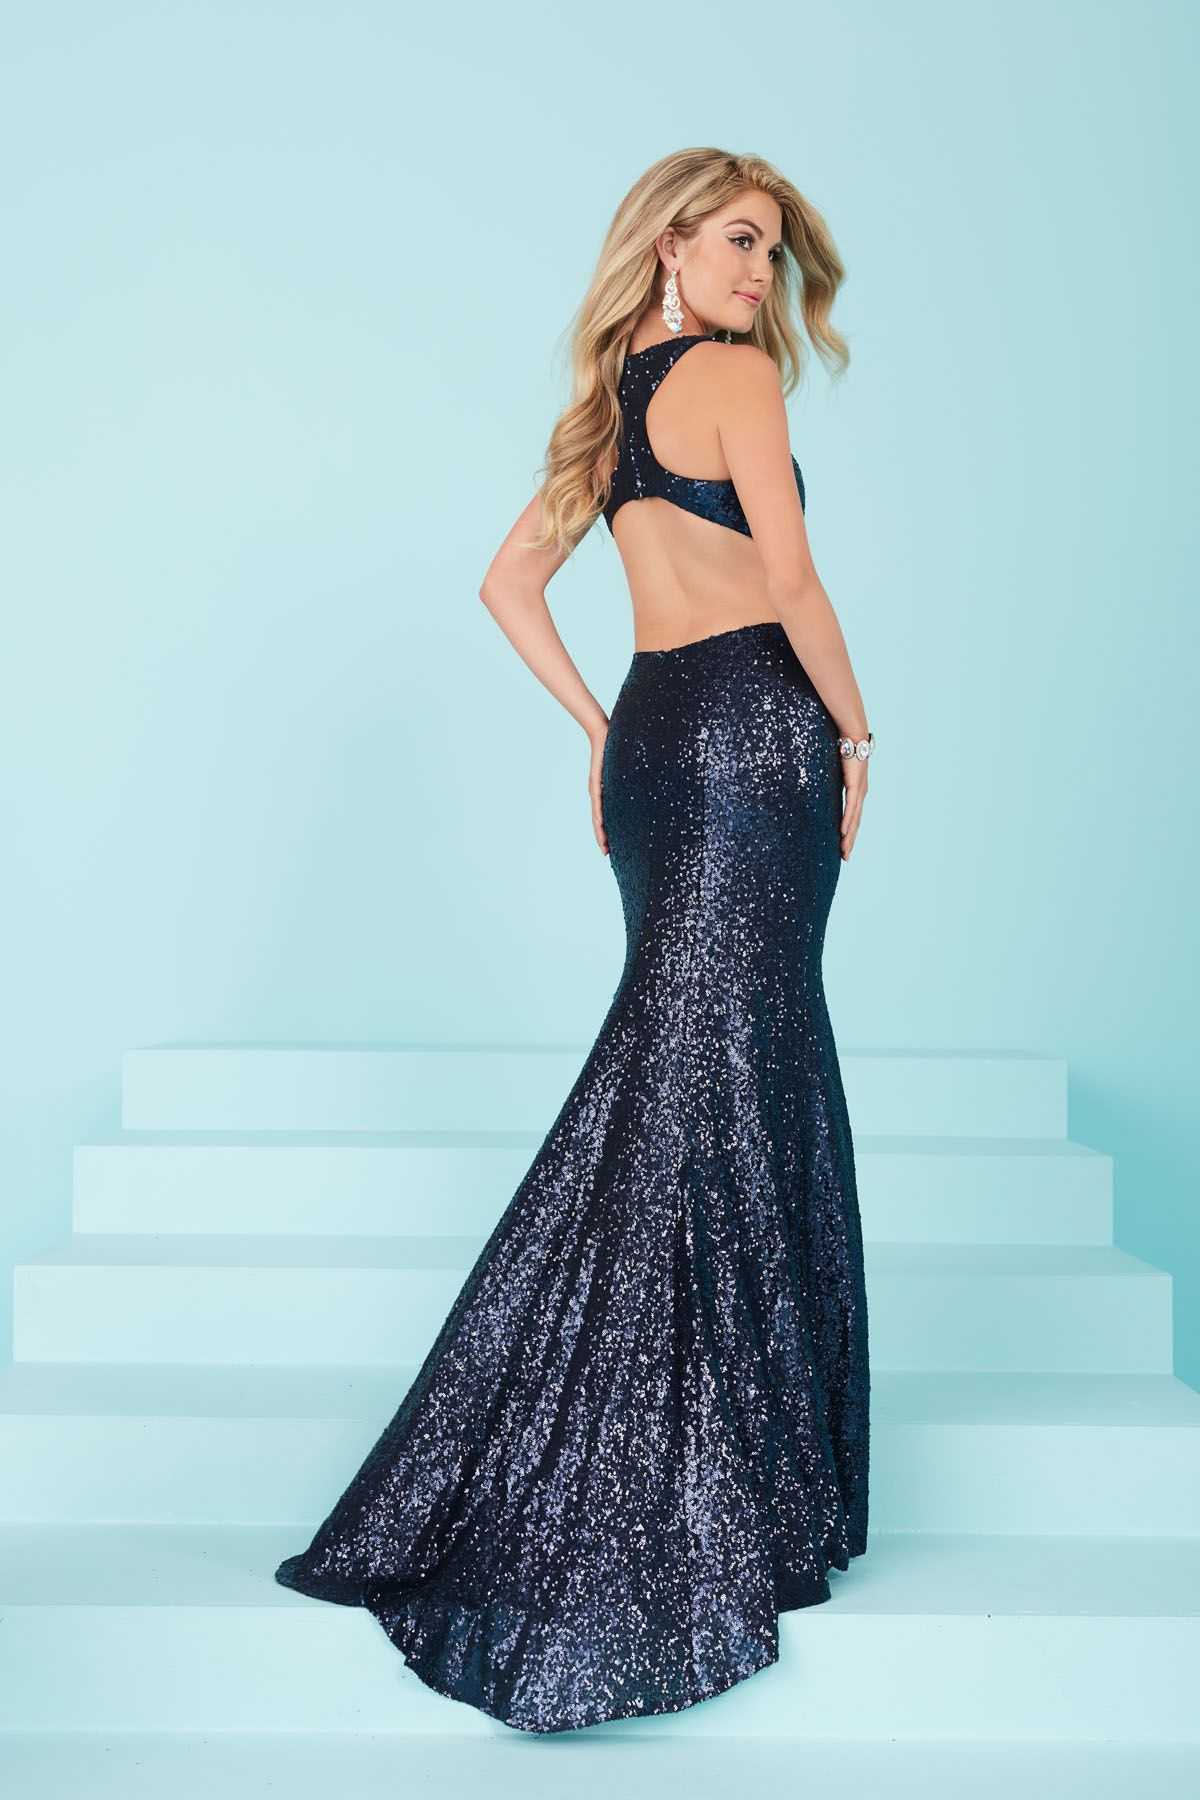 Tiffany Designs 16226 sequin prom dress - International Prom ...